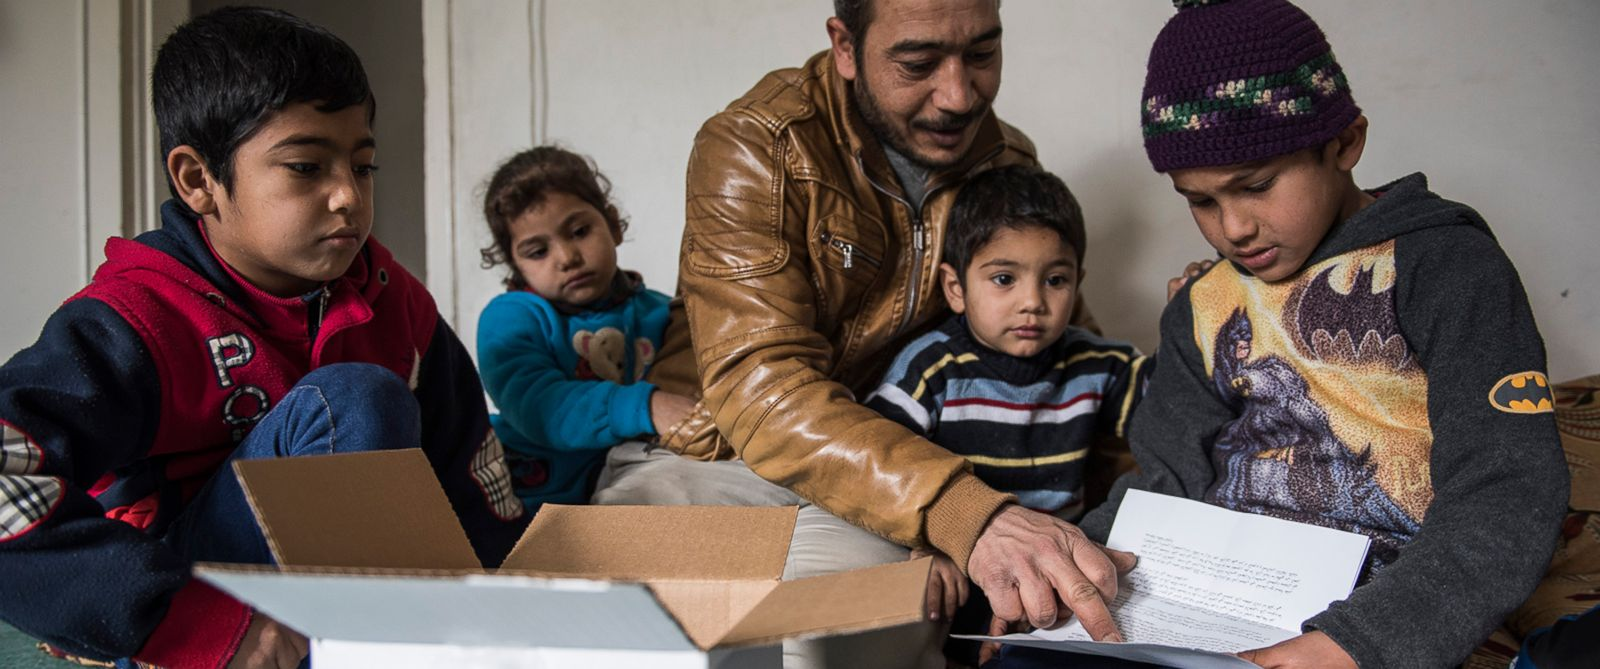 PHOTO: Zaher, at right, is eight years old and lives in an apartment with his family in Irbid, Jordan. His family left Syria after the war broke out and they have received emergency cash assistance from CARE to help them with purchasing food.